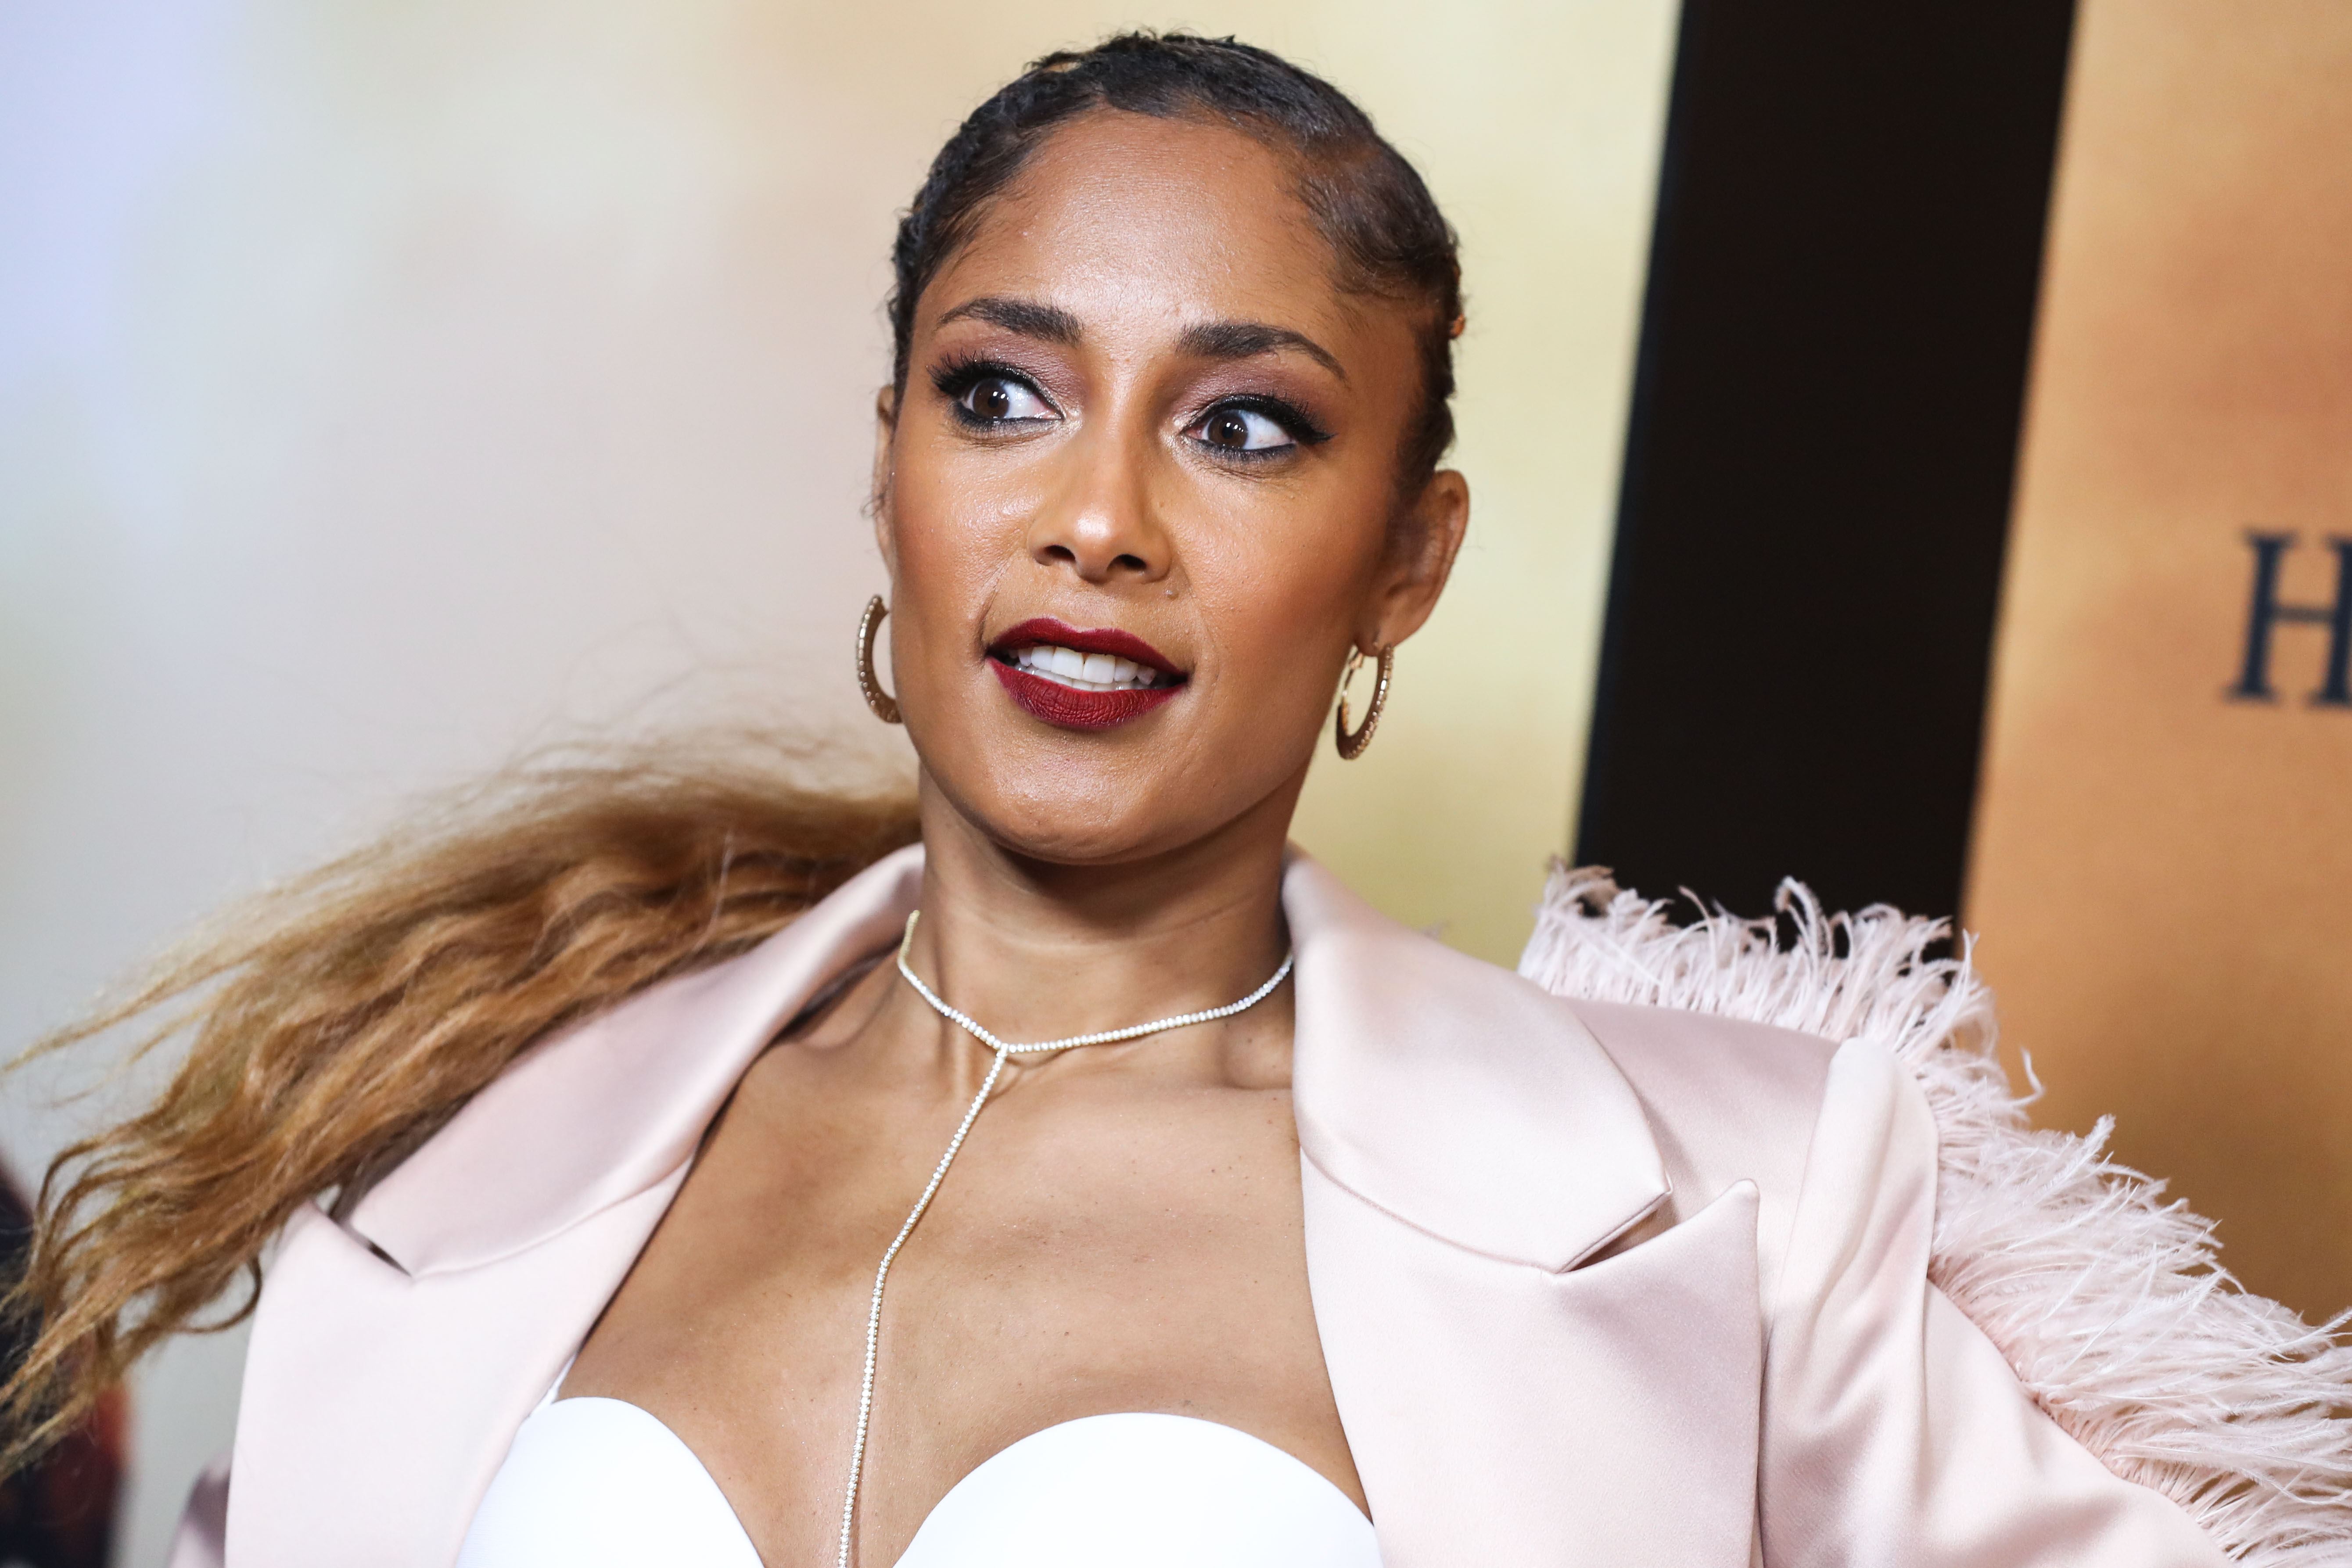 Amanda Seales arrives at the Los Angeles Premiere Of Focus Features' 'Harriet' held at The Orpheum Theatre on October 29, 2019 in Los Angeles, California, United States.